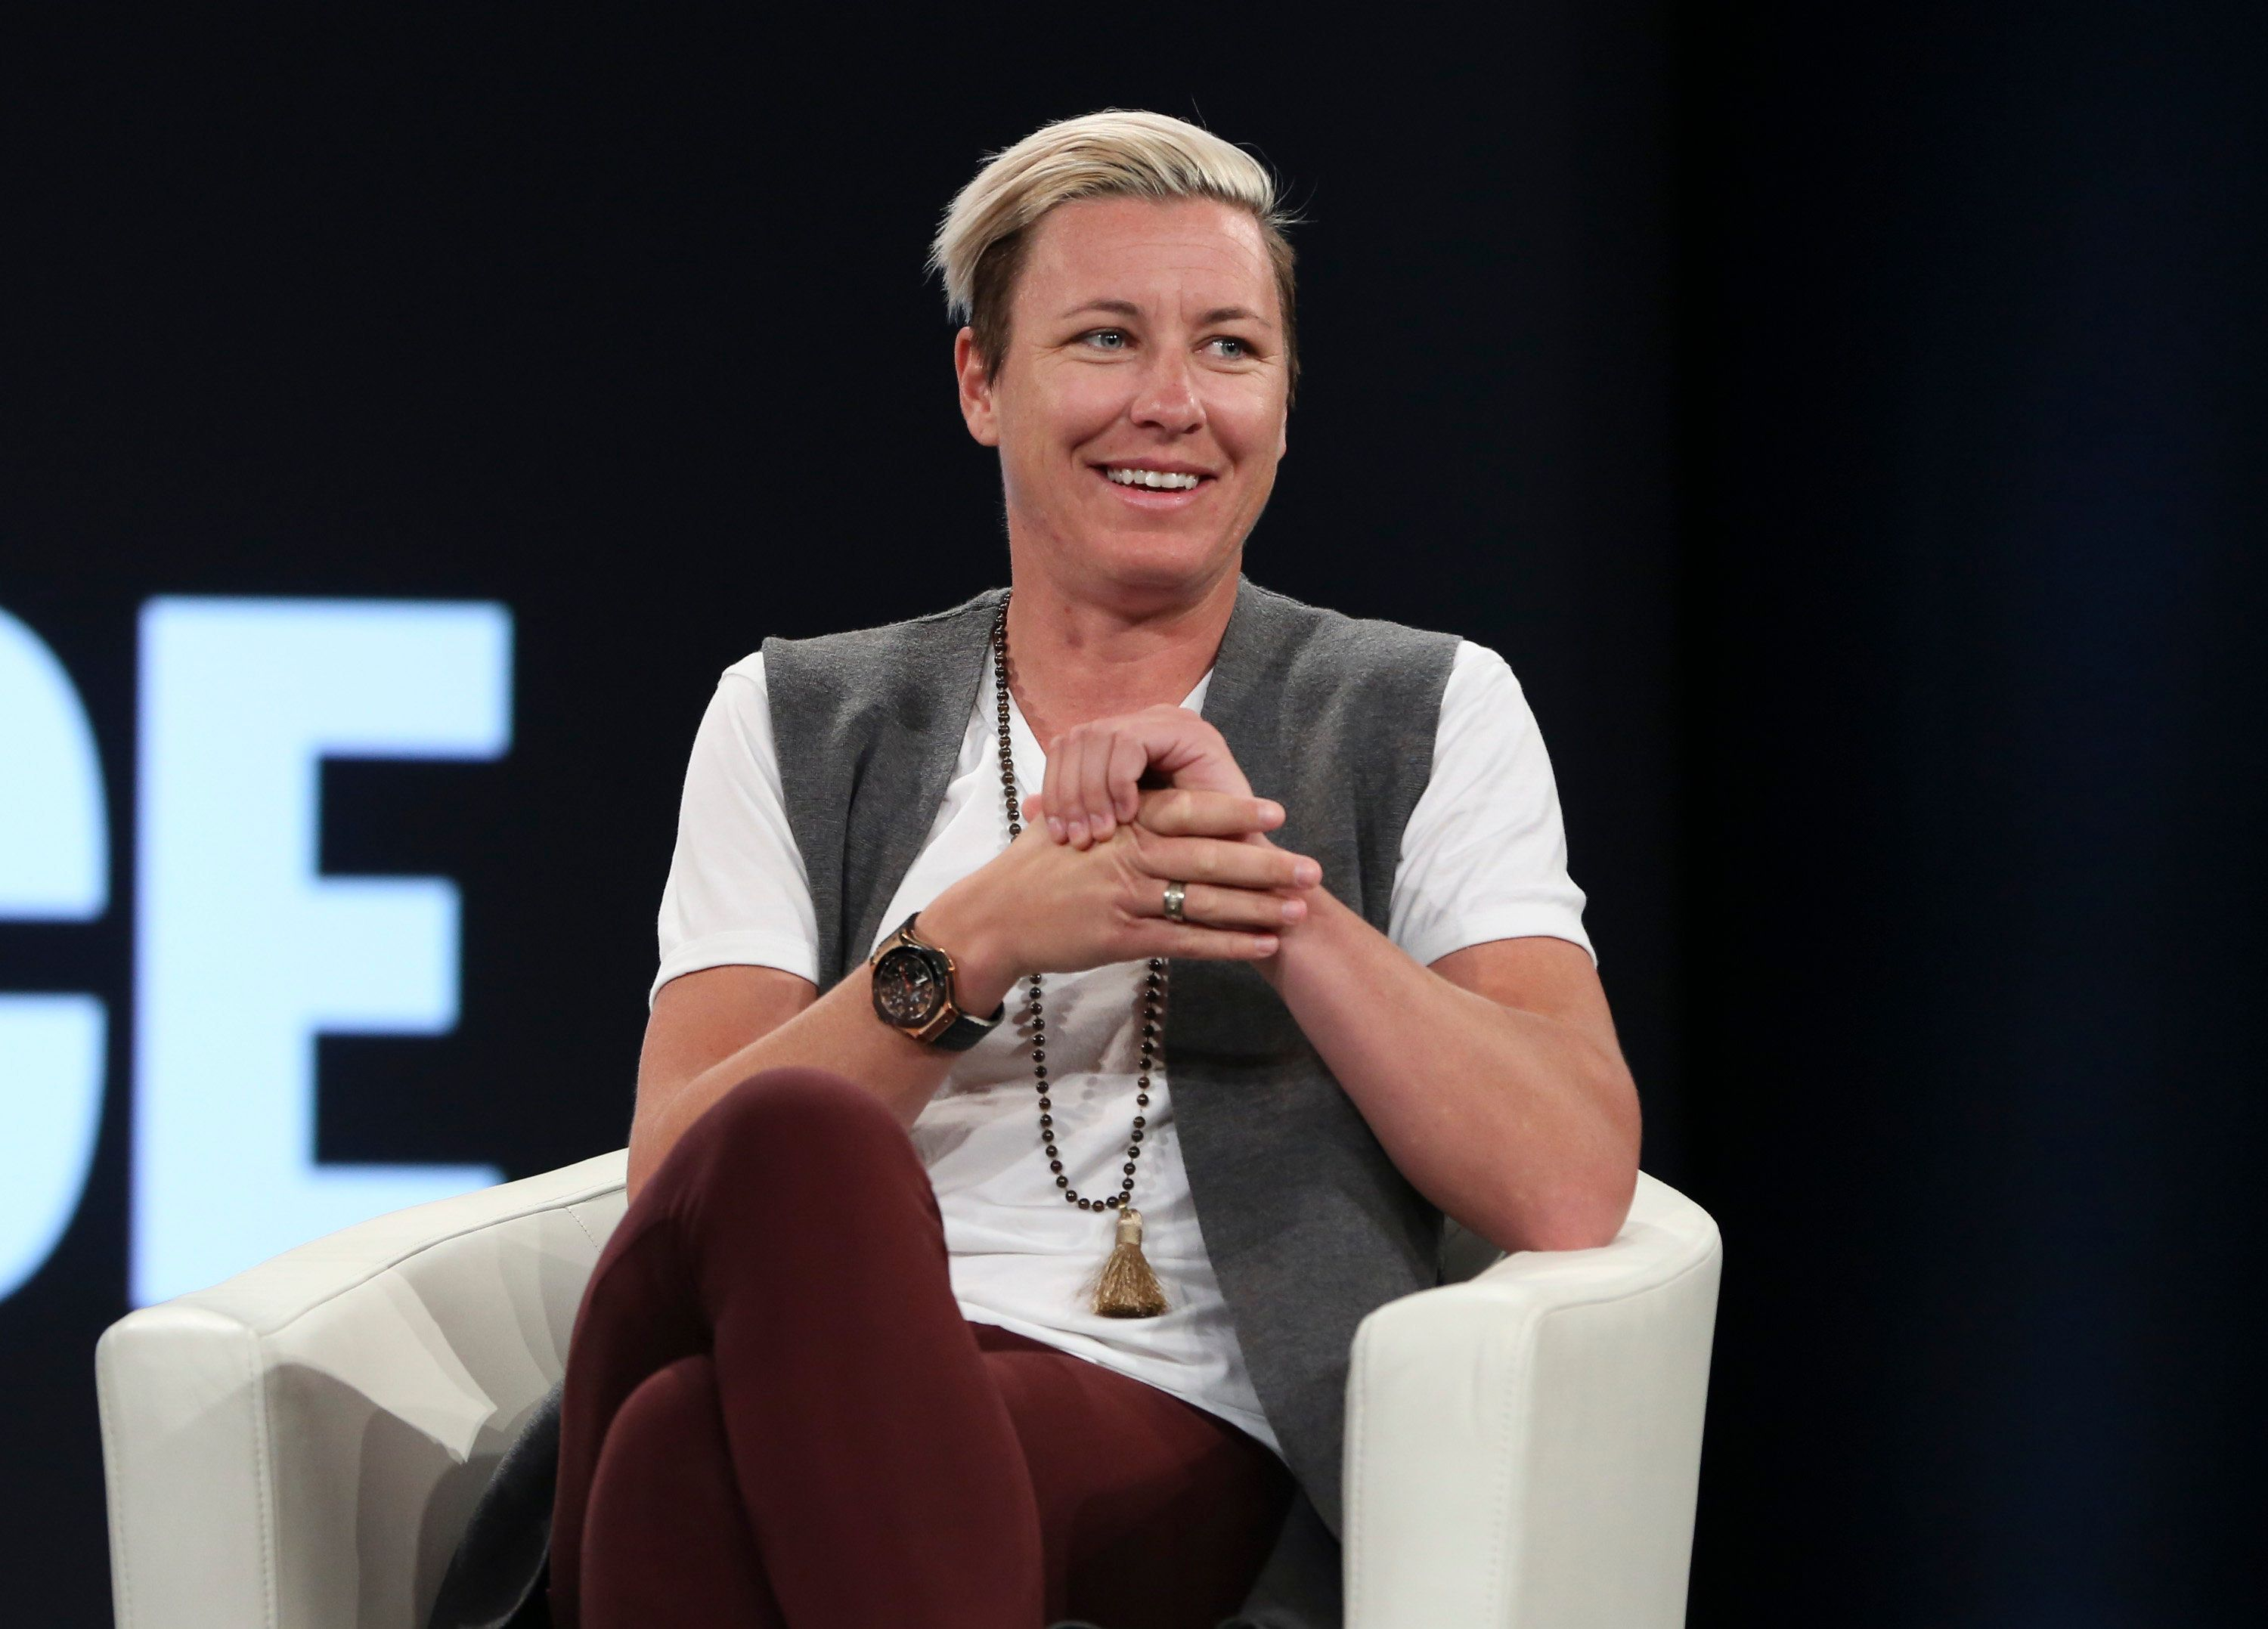 Abby Wambach opened up about her post-soccer plans at the MAKERS Conference.